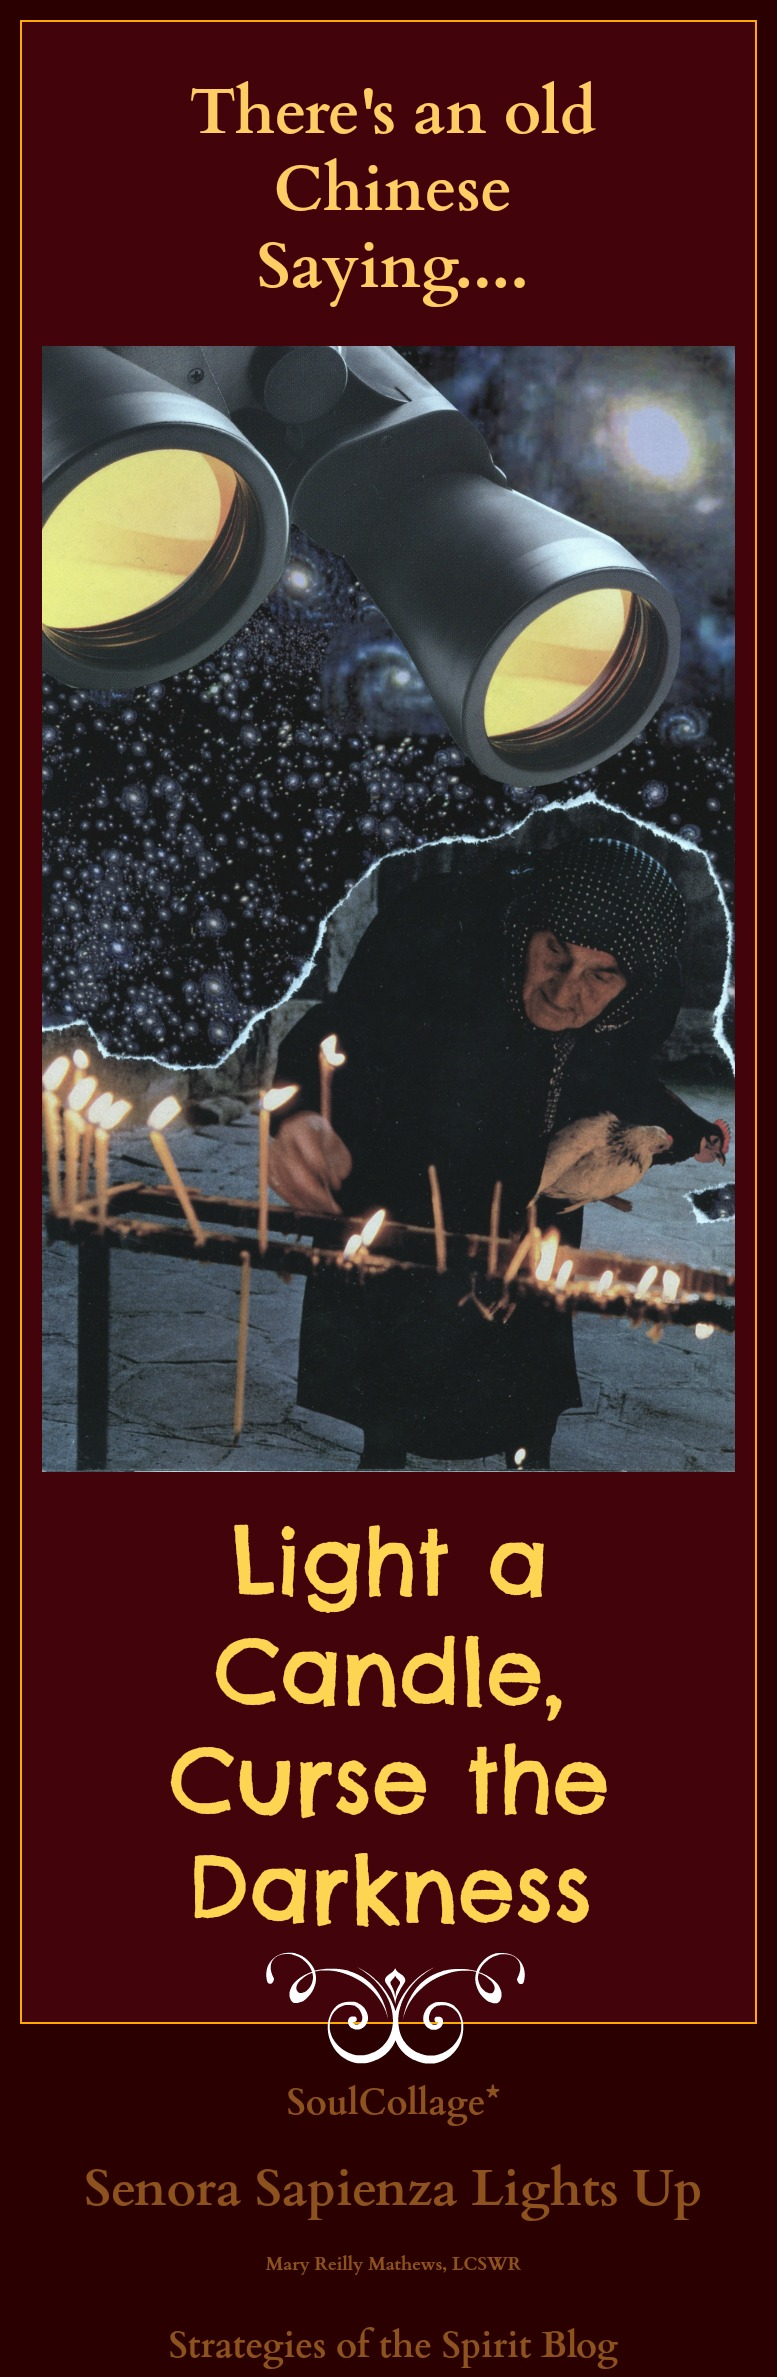 old sayings, light a candle, winter solstice celbratiions, proverbs, wisdom sayings, wise sayings